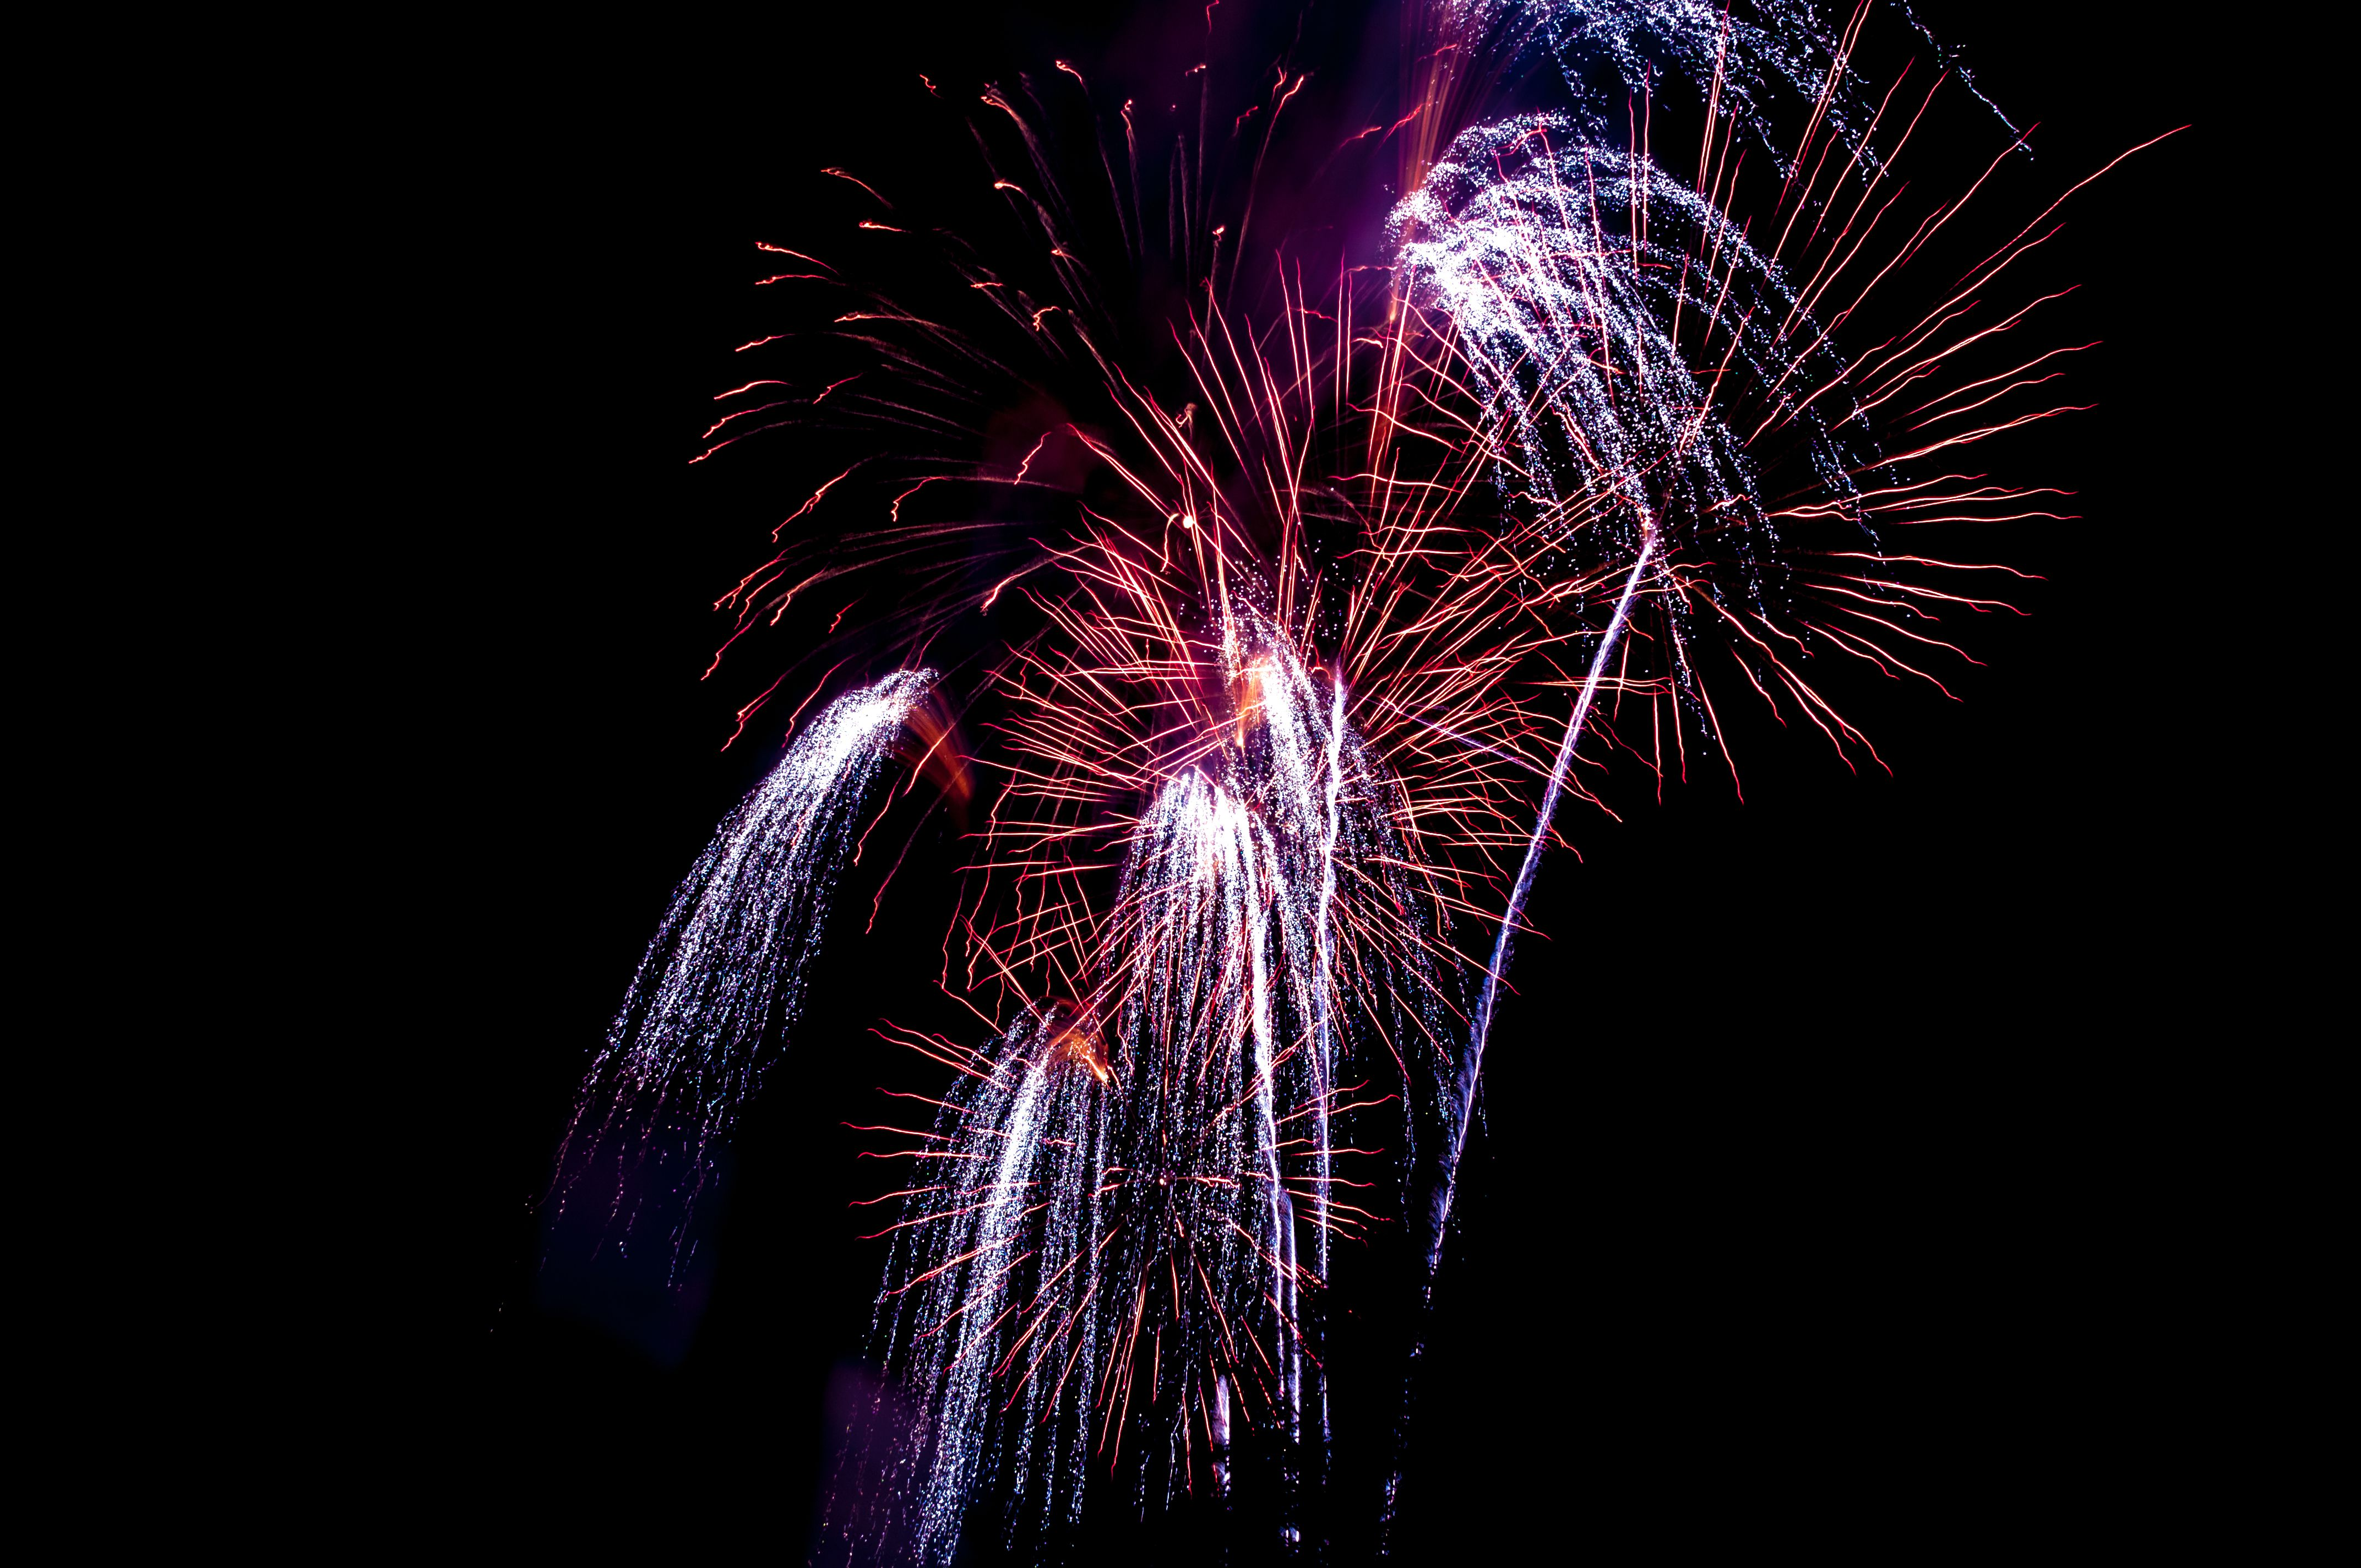 Potassium chlorate is used in fireworks as an oxidizer and to produce a purple flame.